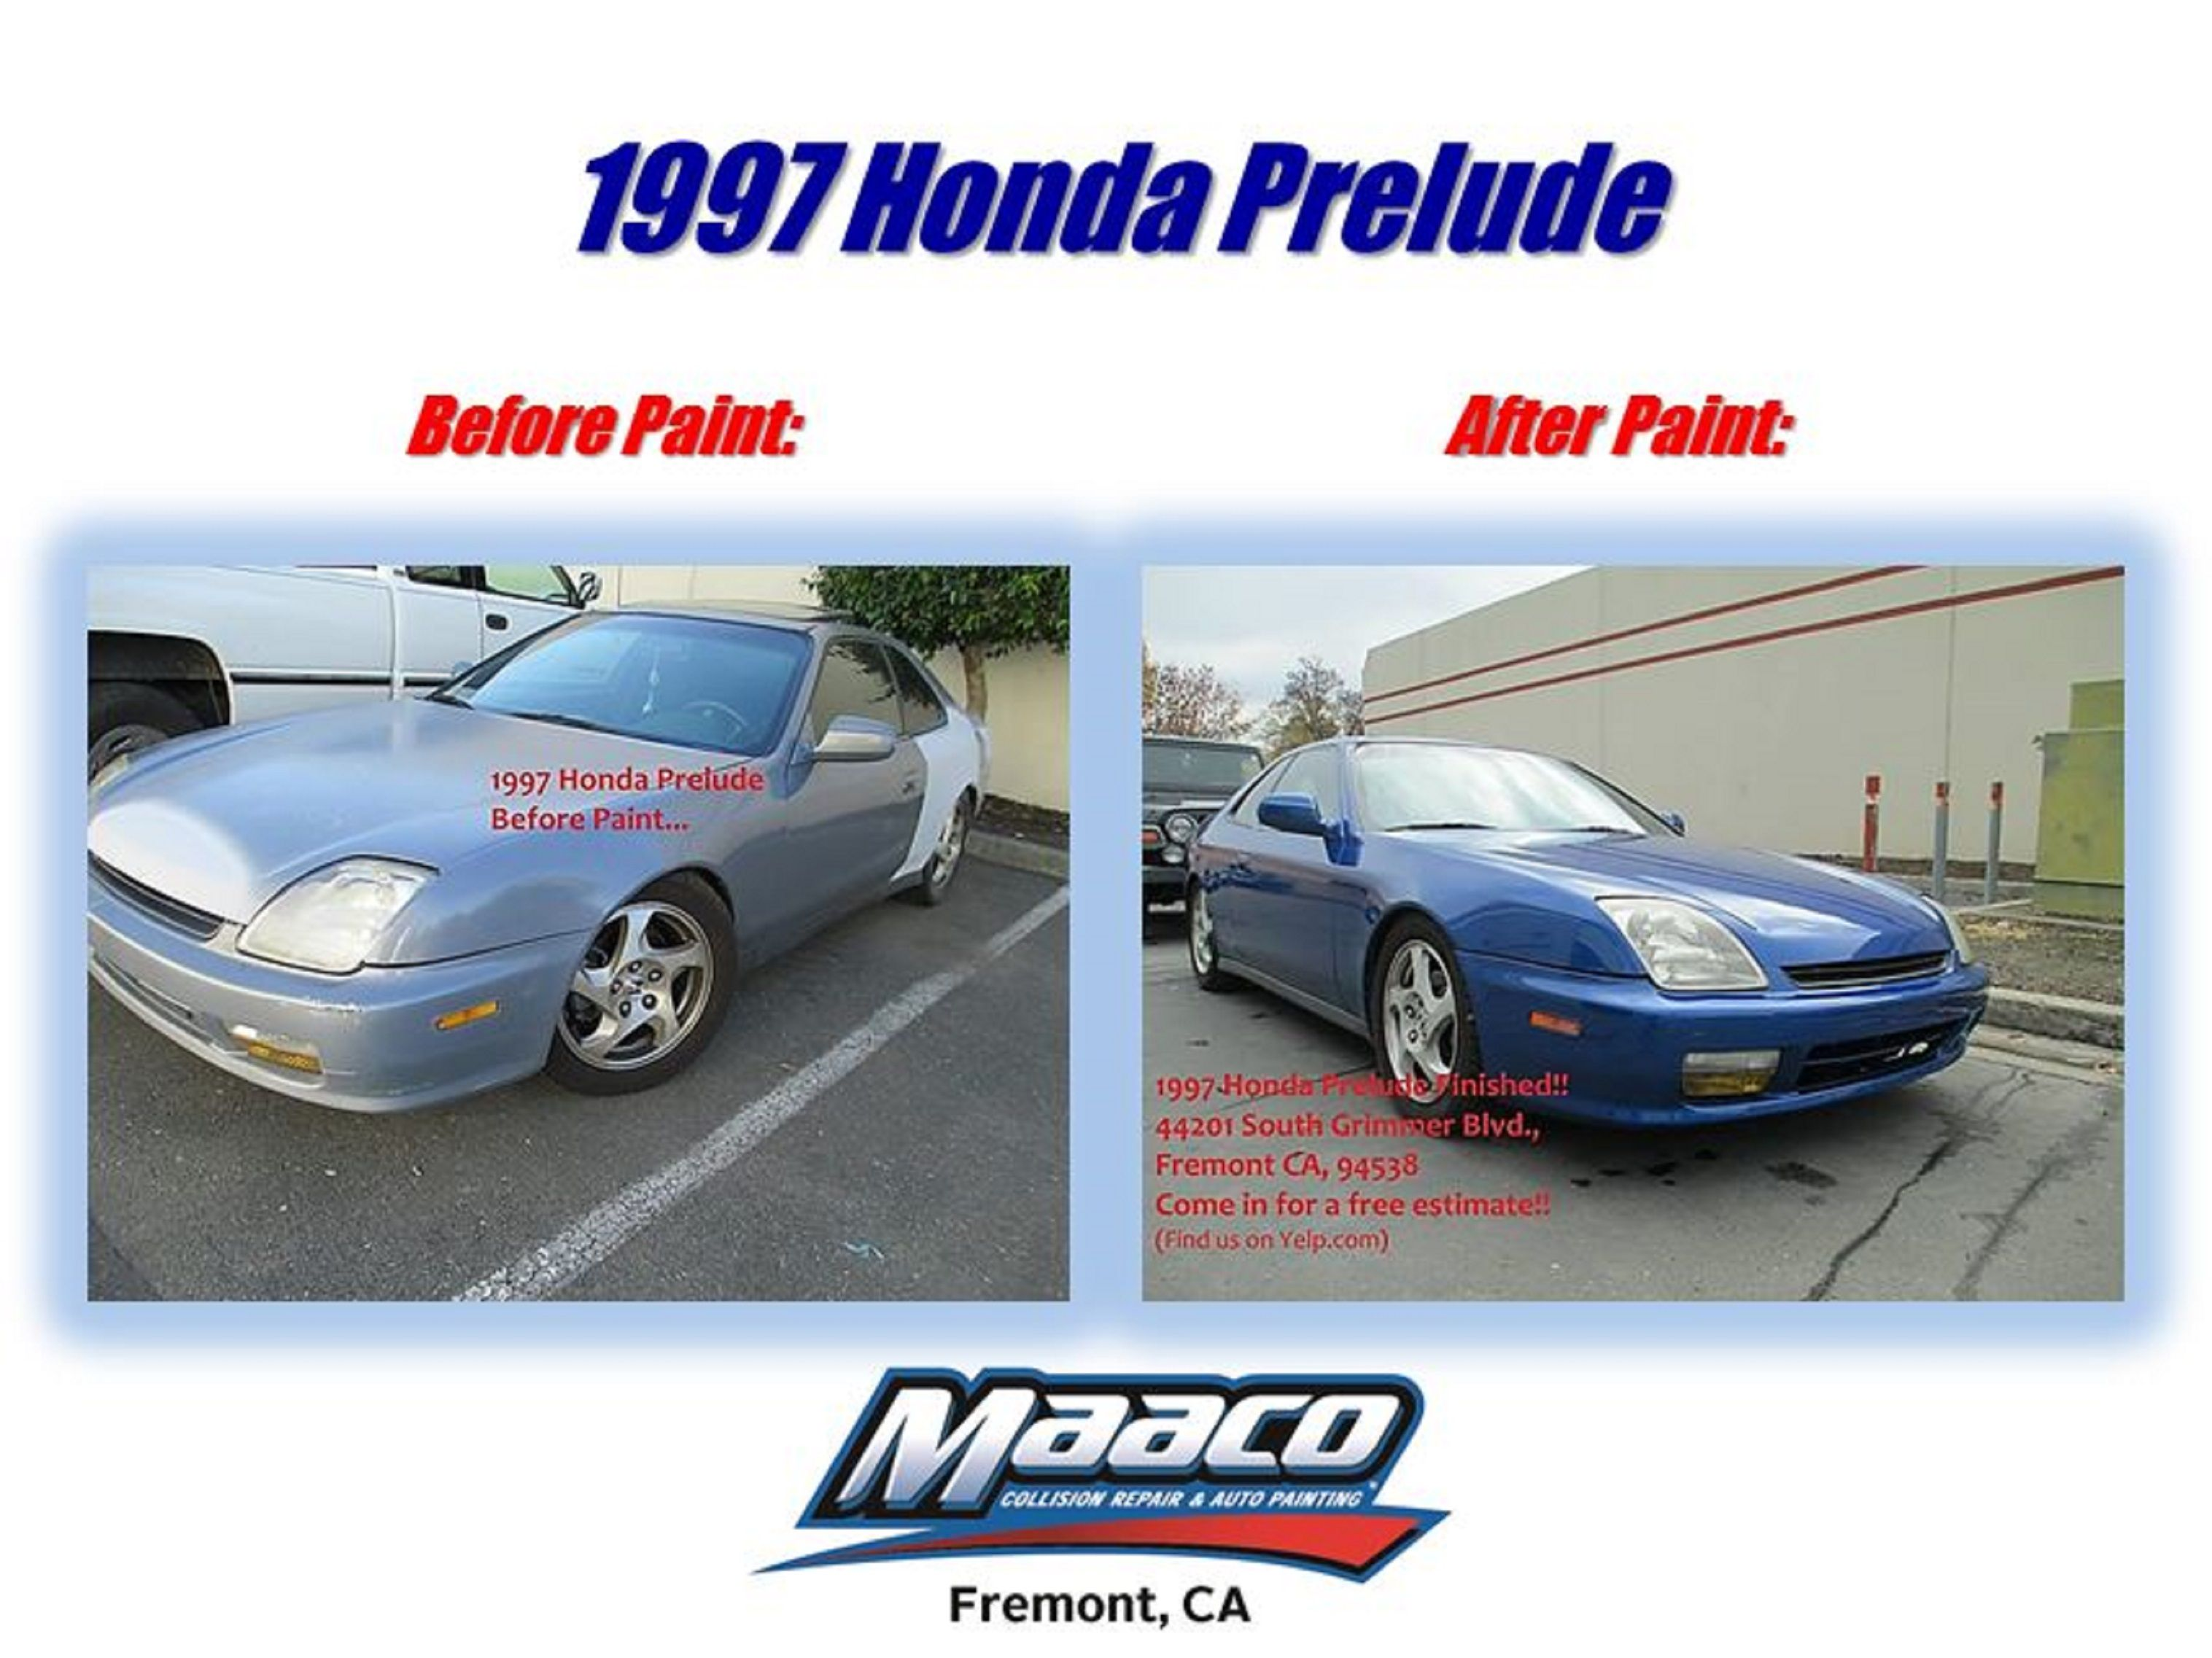 e5c649d8266ec6ad74c82312f714d222 Interesting Info About 2000 Honda Prelude